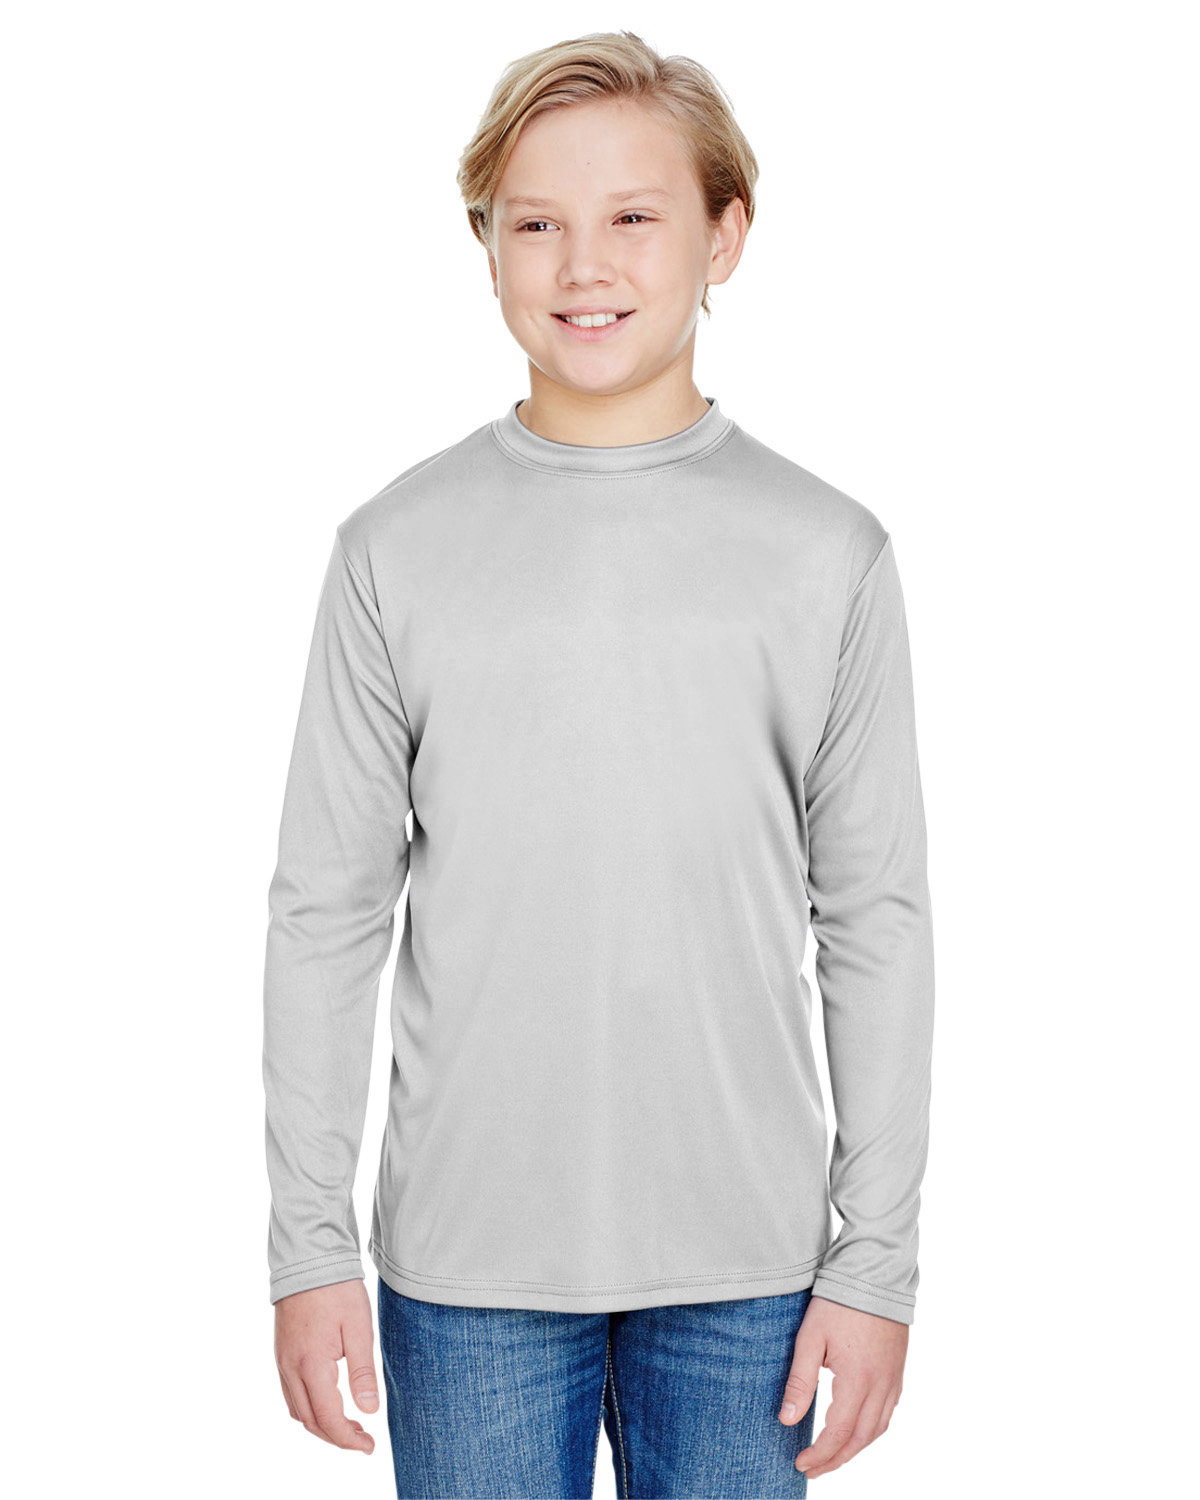 A4 Youth Long Sleeve Cooling Performance Crew Shirt SILVER